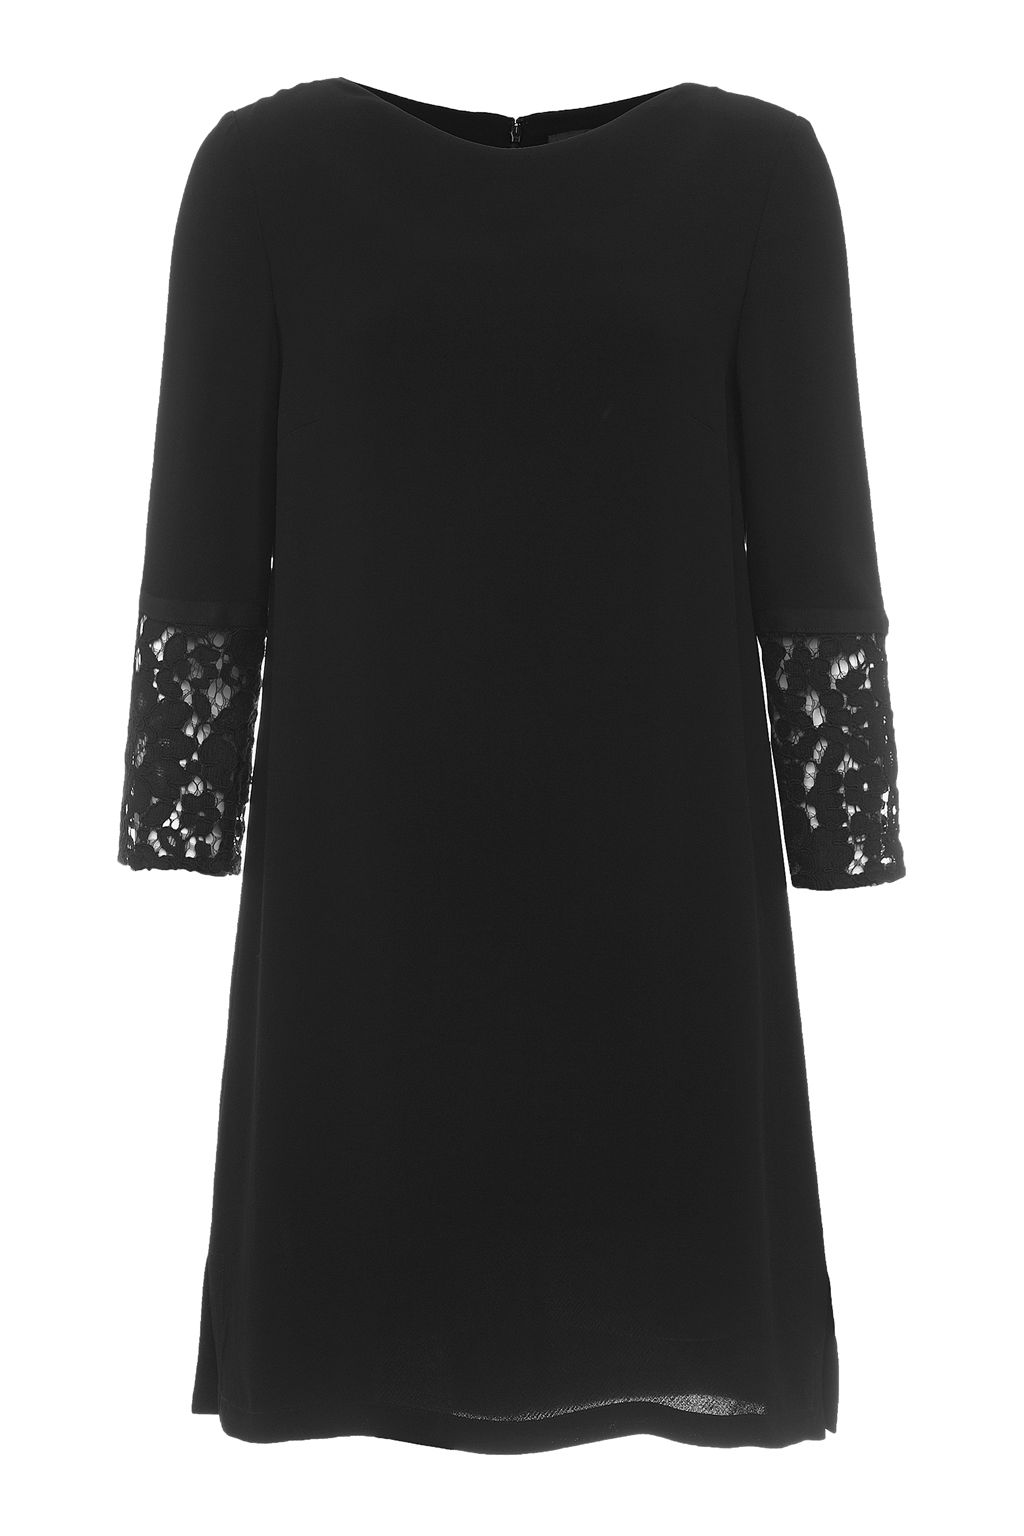 French Connection Ensor Crepe Embroidered Tunic Dress, Black